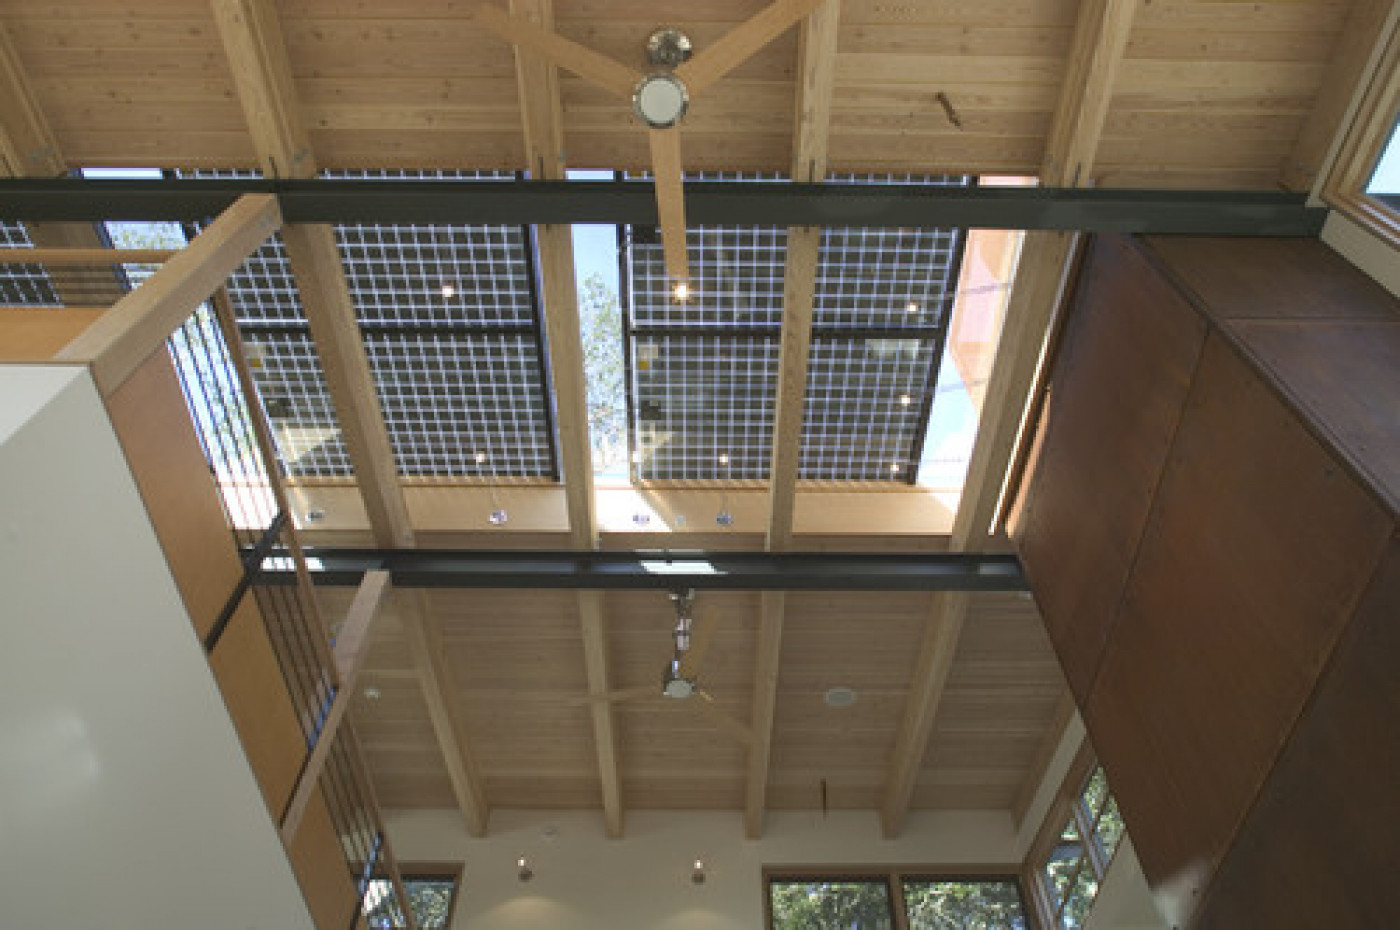 Discover Skylights As A Way to add to existing window lighting